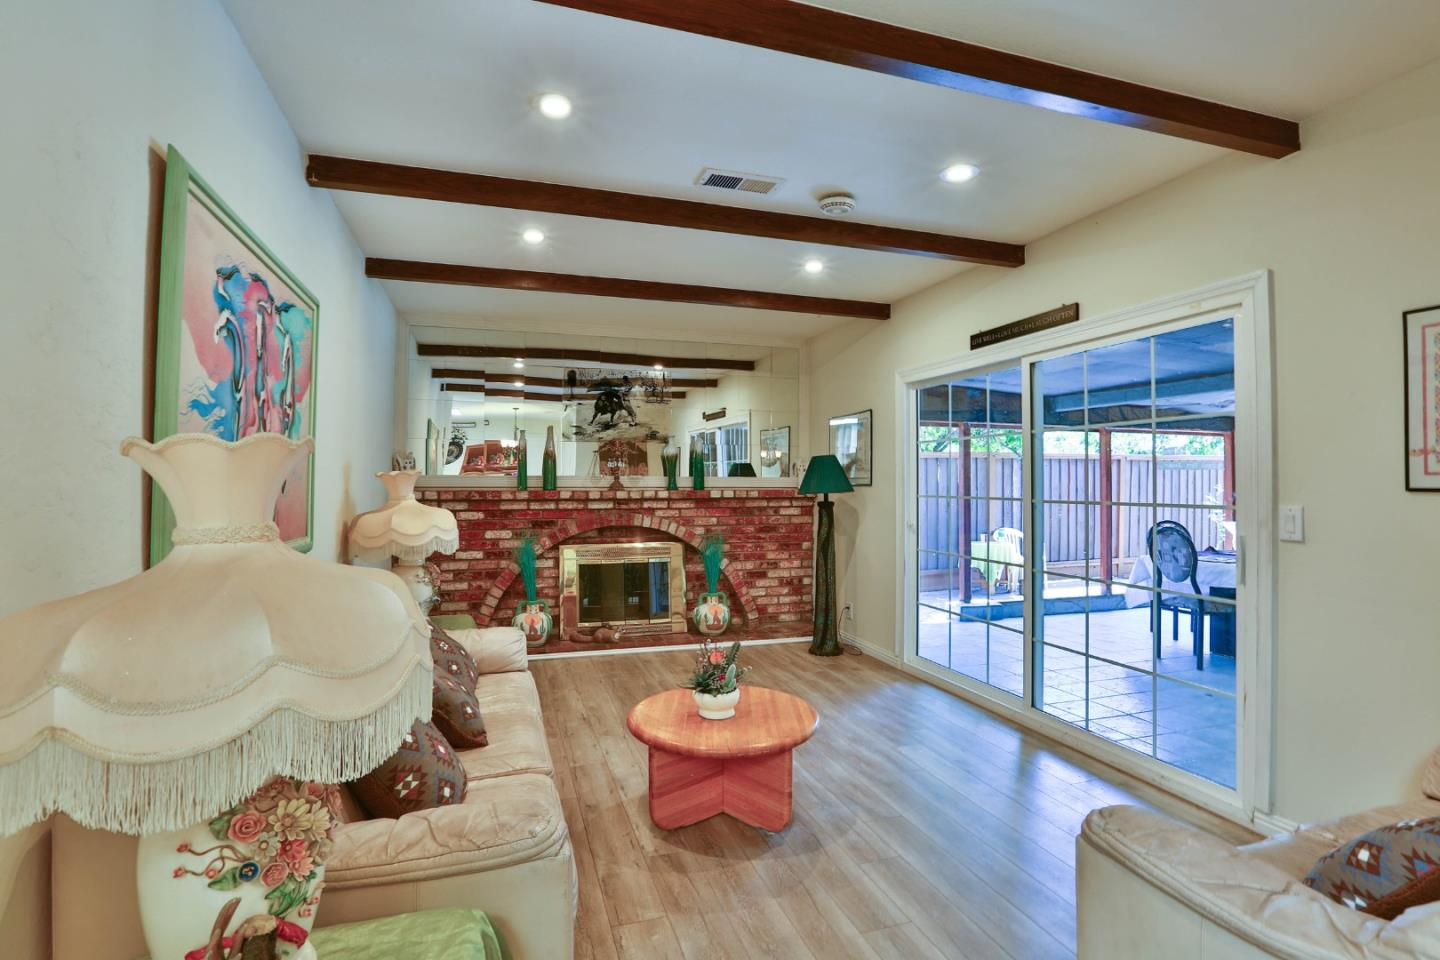 Additional photo for property listing at 2878 Castleton Drive  San Jose, カリフォルニア 95148 アメリカ合衆国